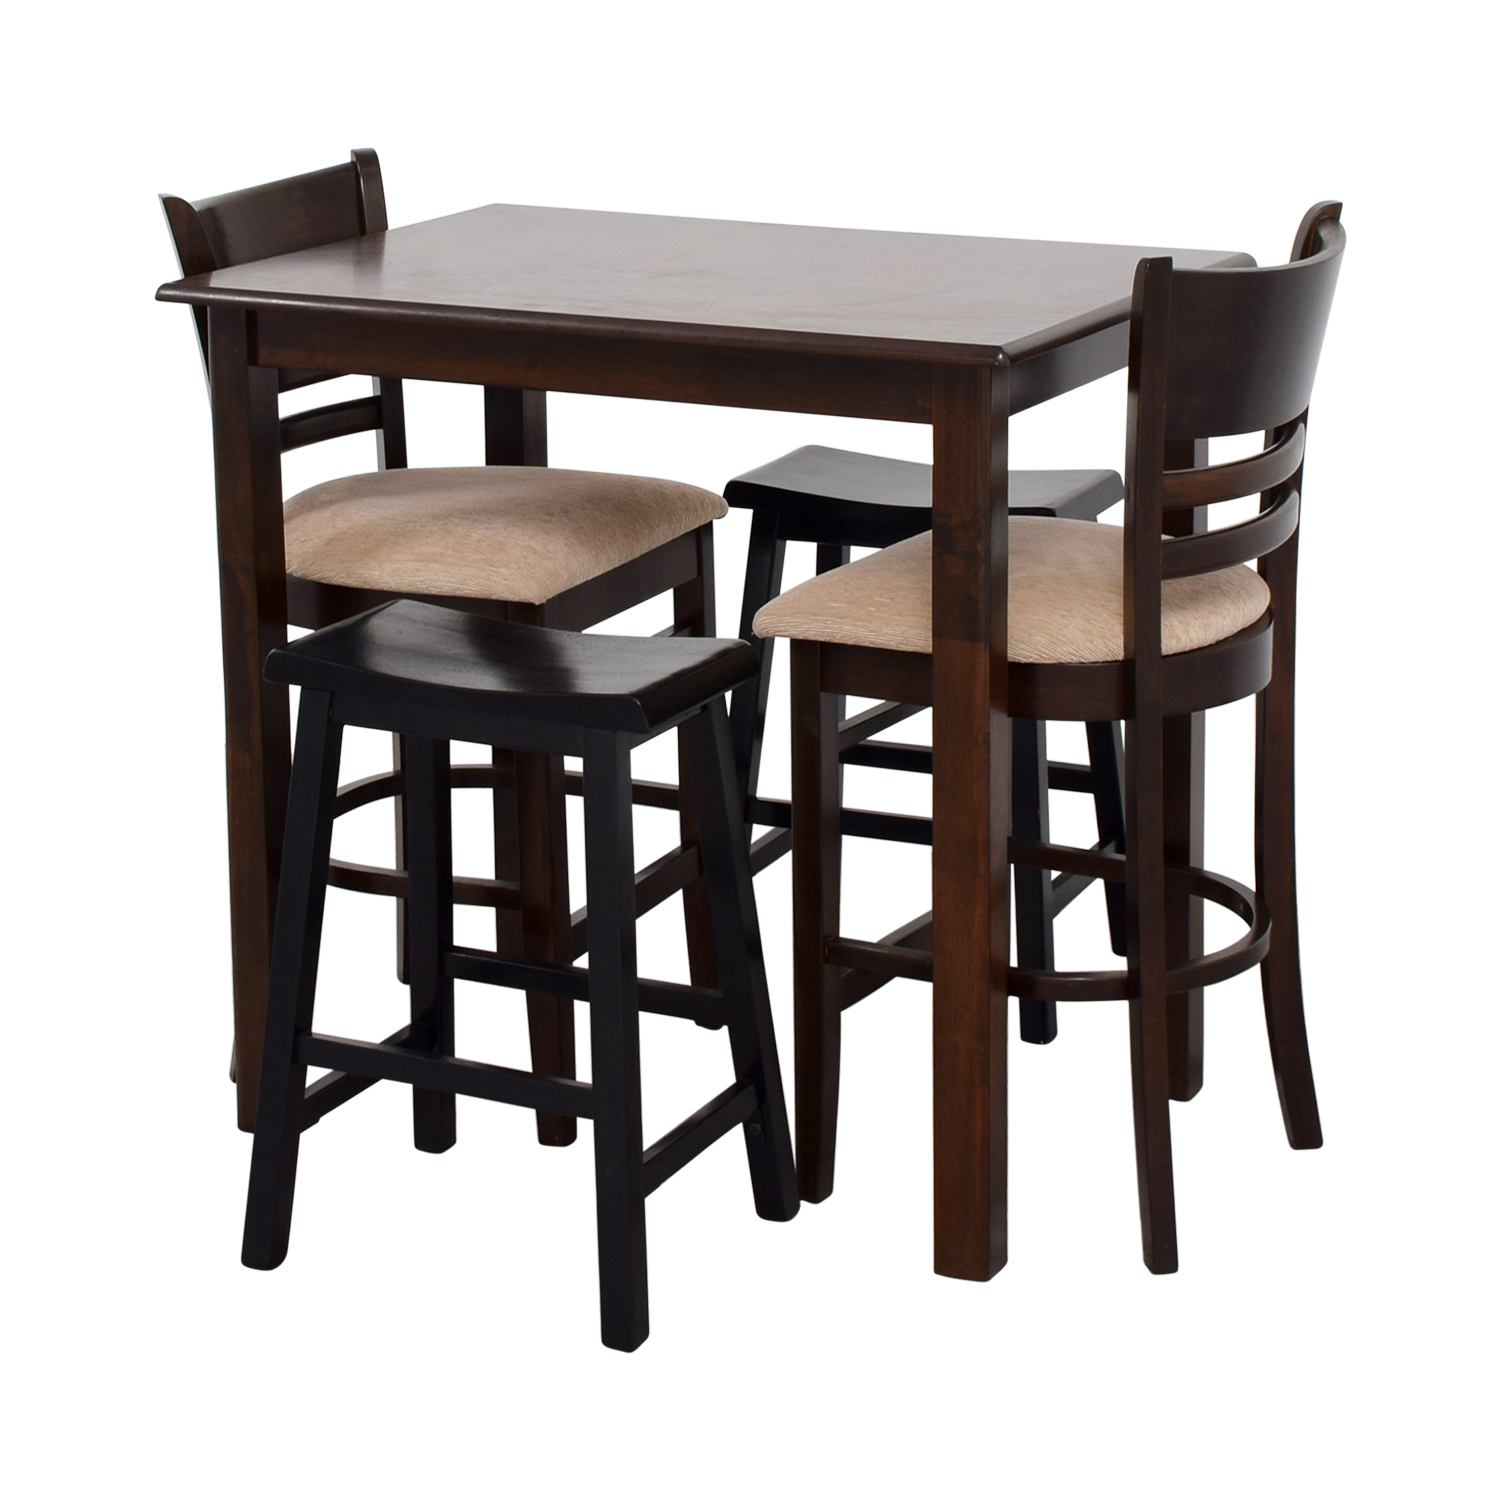 buy Simple Bar Table with Two Chairs and Two Stools online